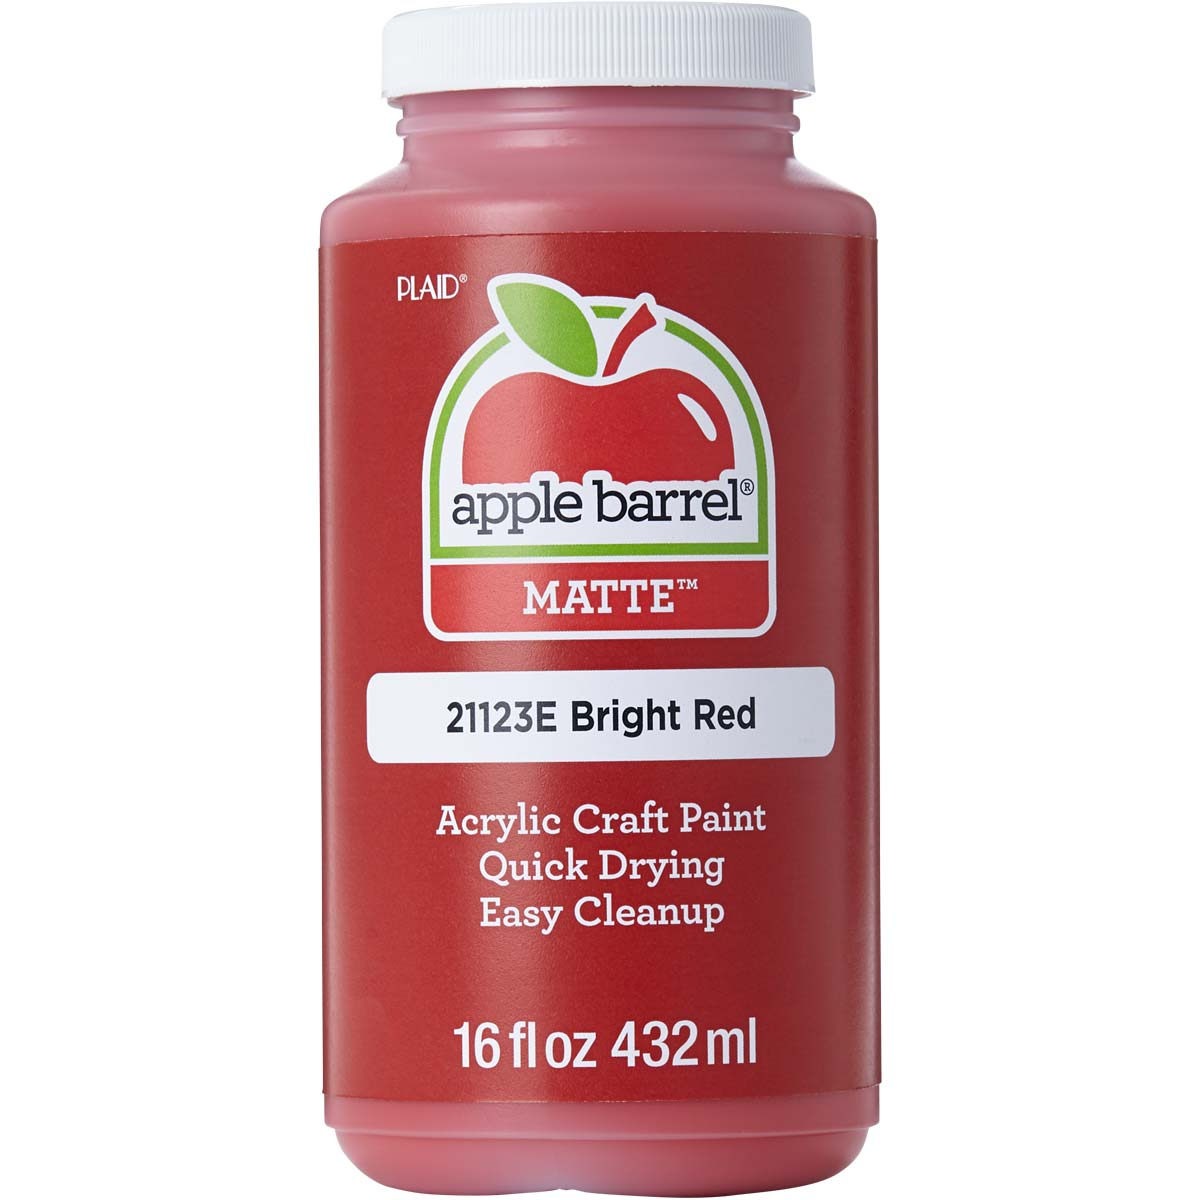 Apple Barrel ® Colors - Bright Red, 16 oz. - 21123